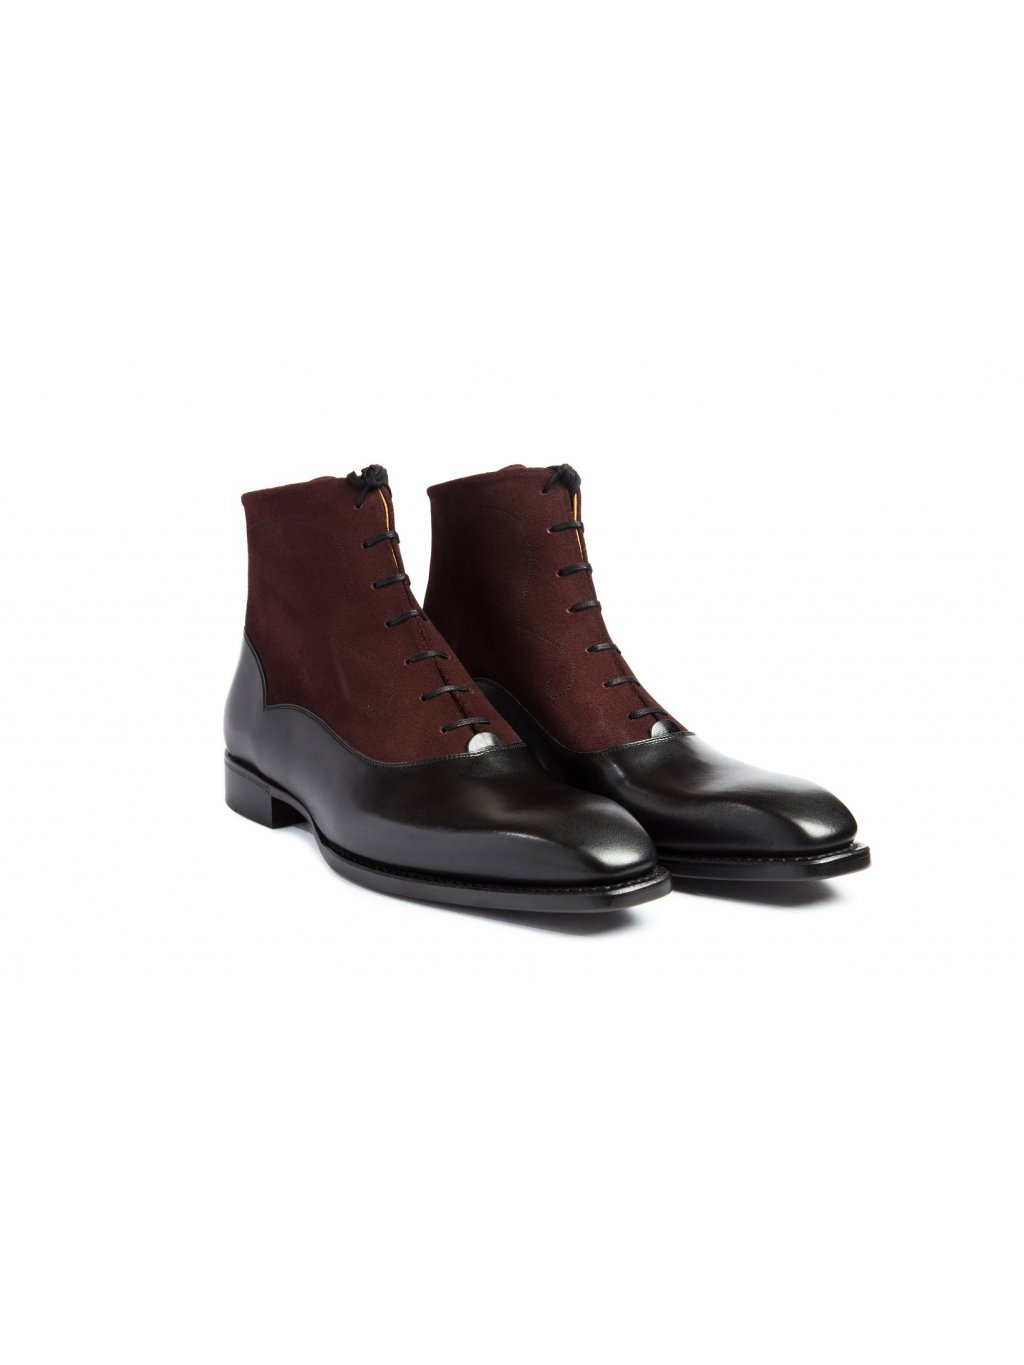 Boty boots black